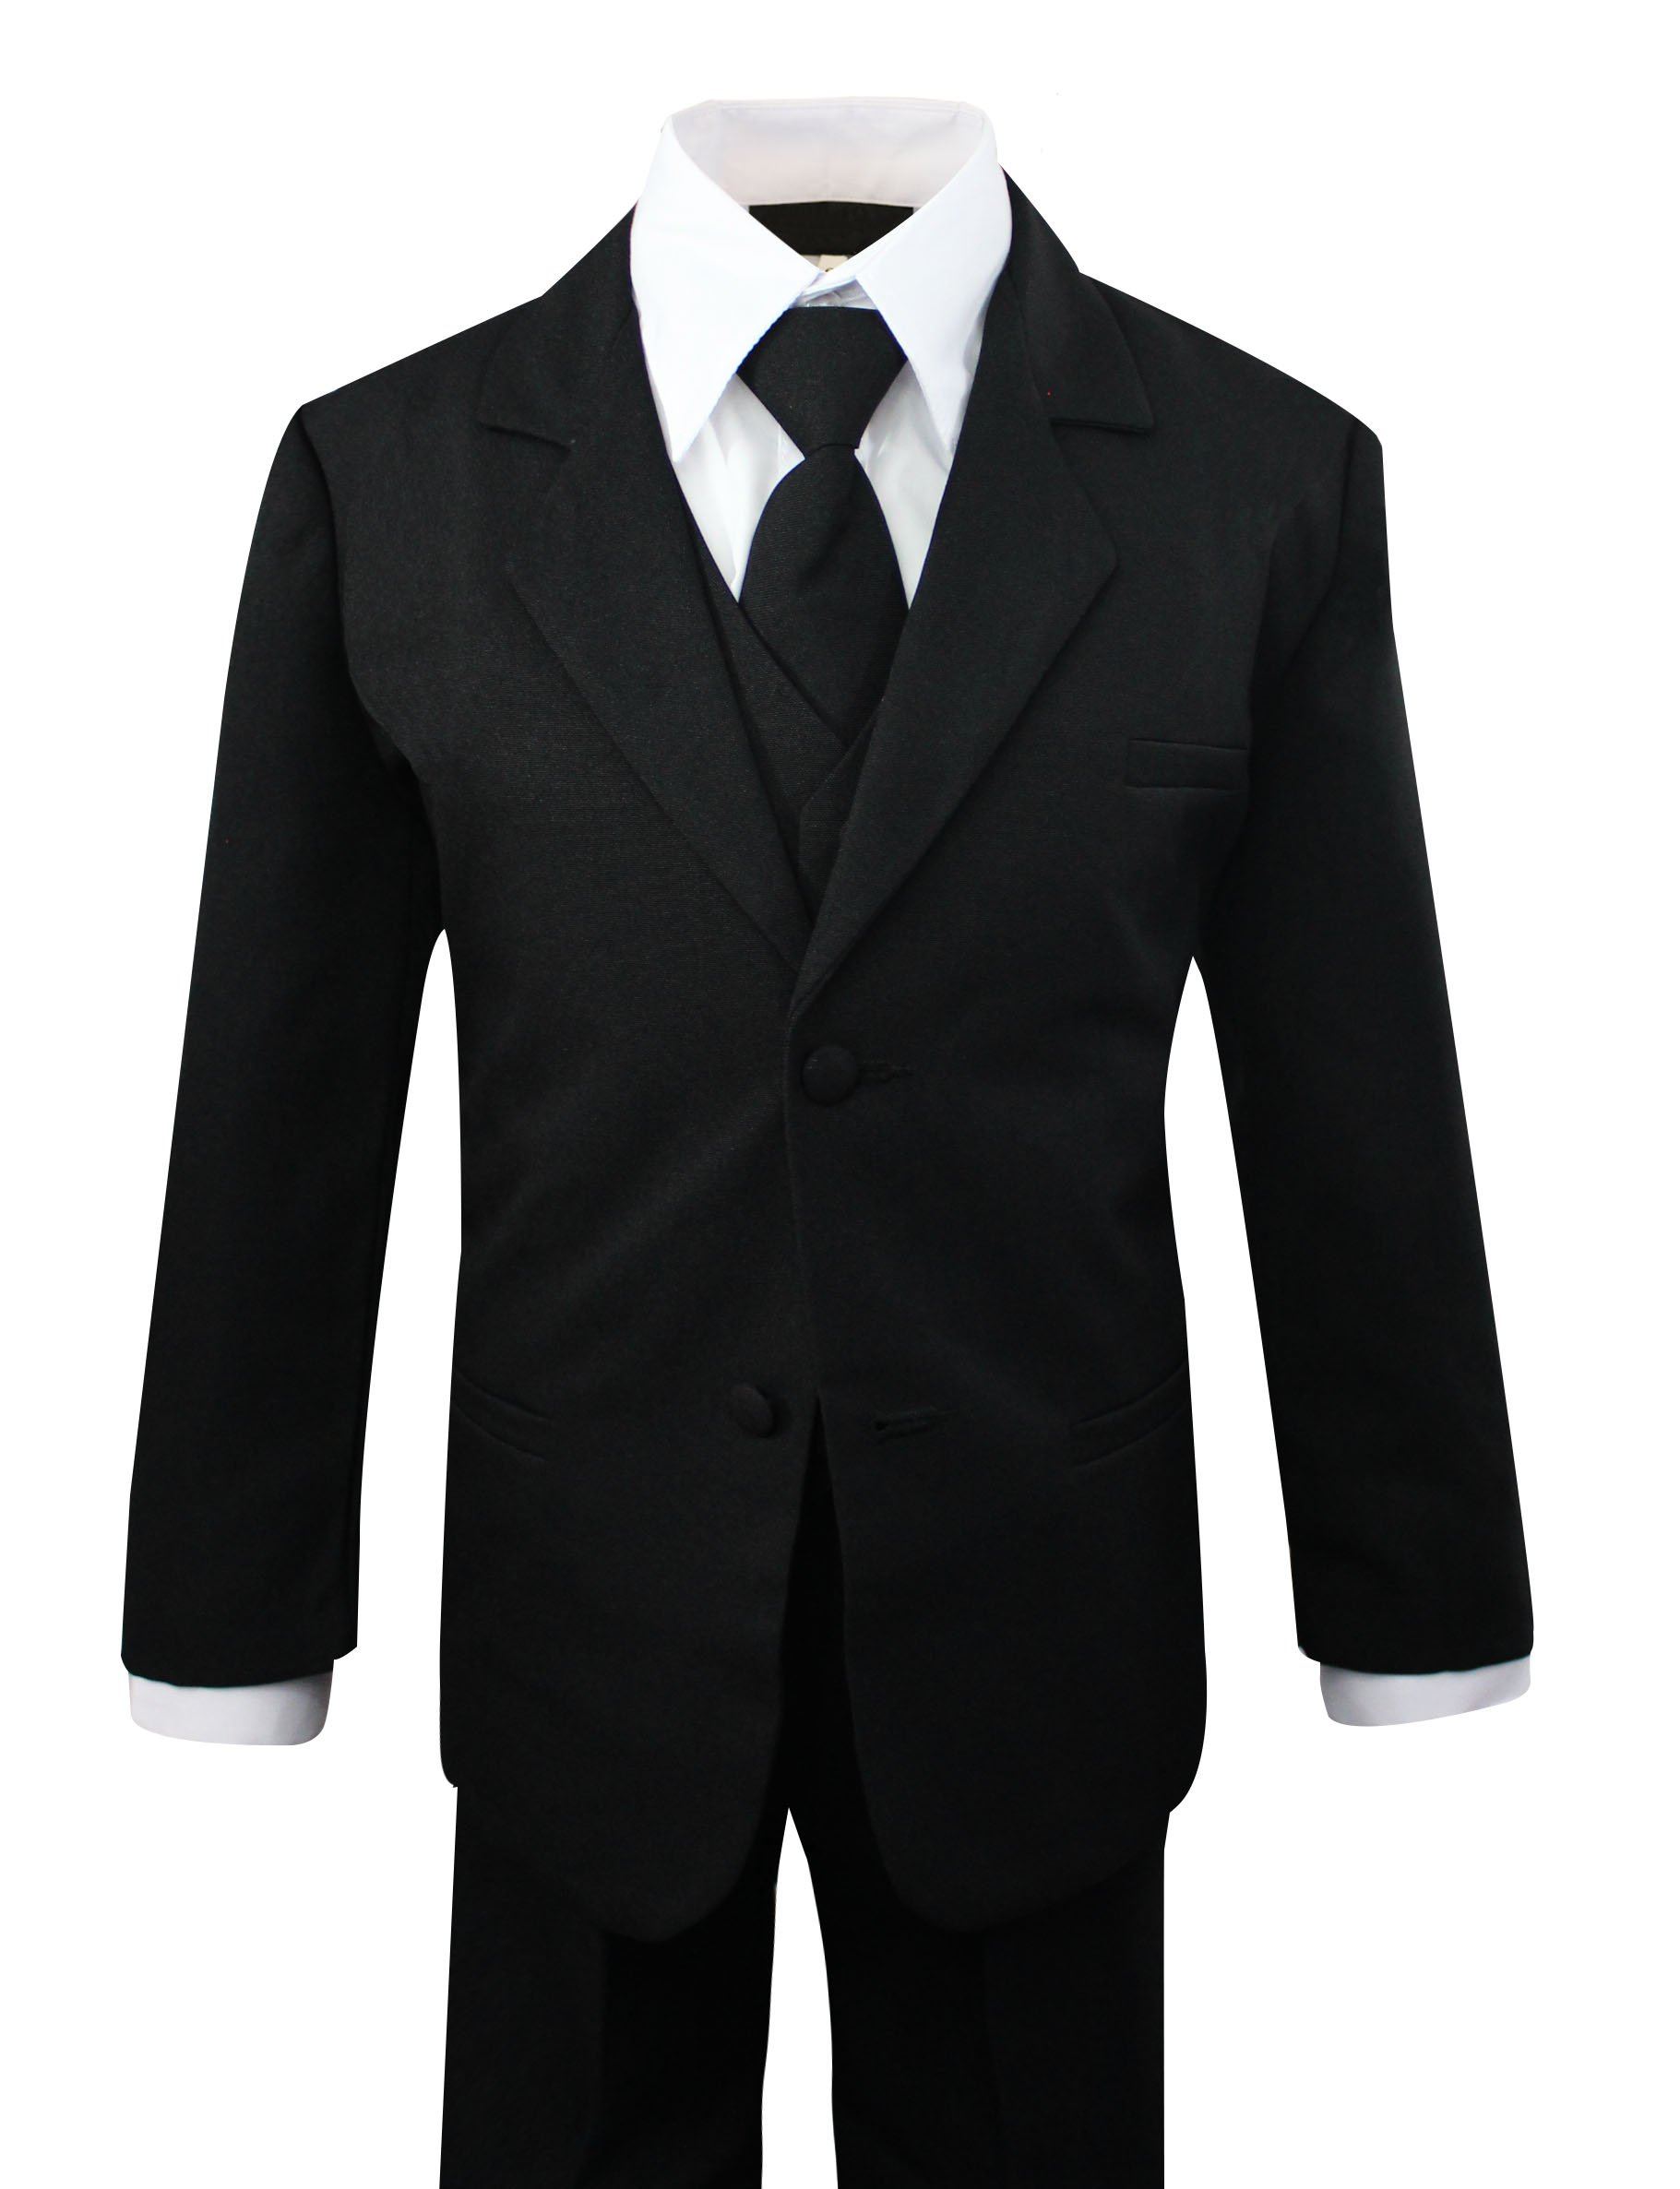 Luca Gabriel Toddler Boys' 5 Piece Classic Fit No Tail Formal Black Dress Suit Set with Tie and Vest - Size 3T